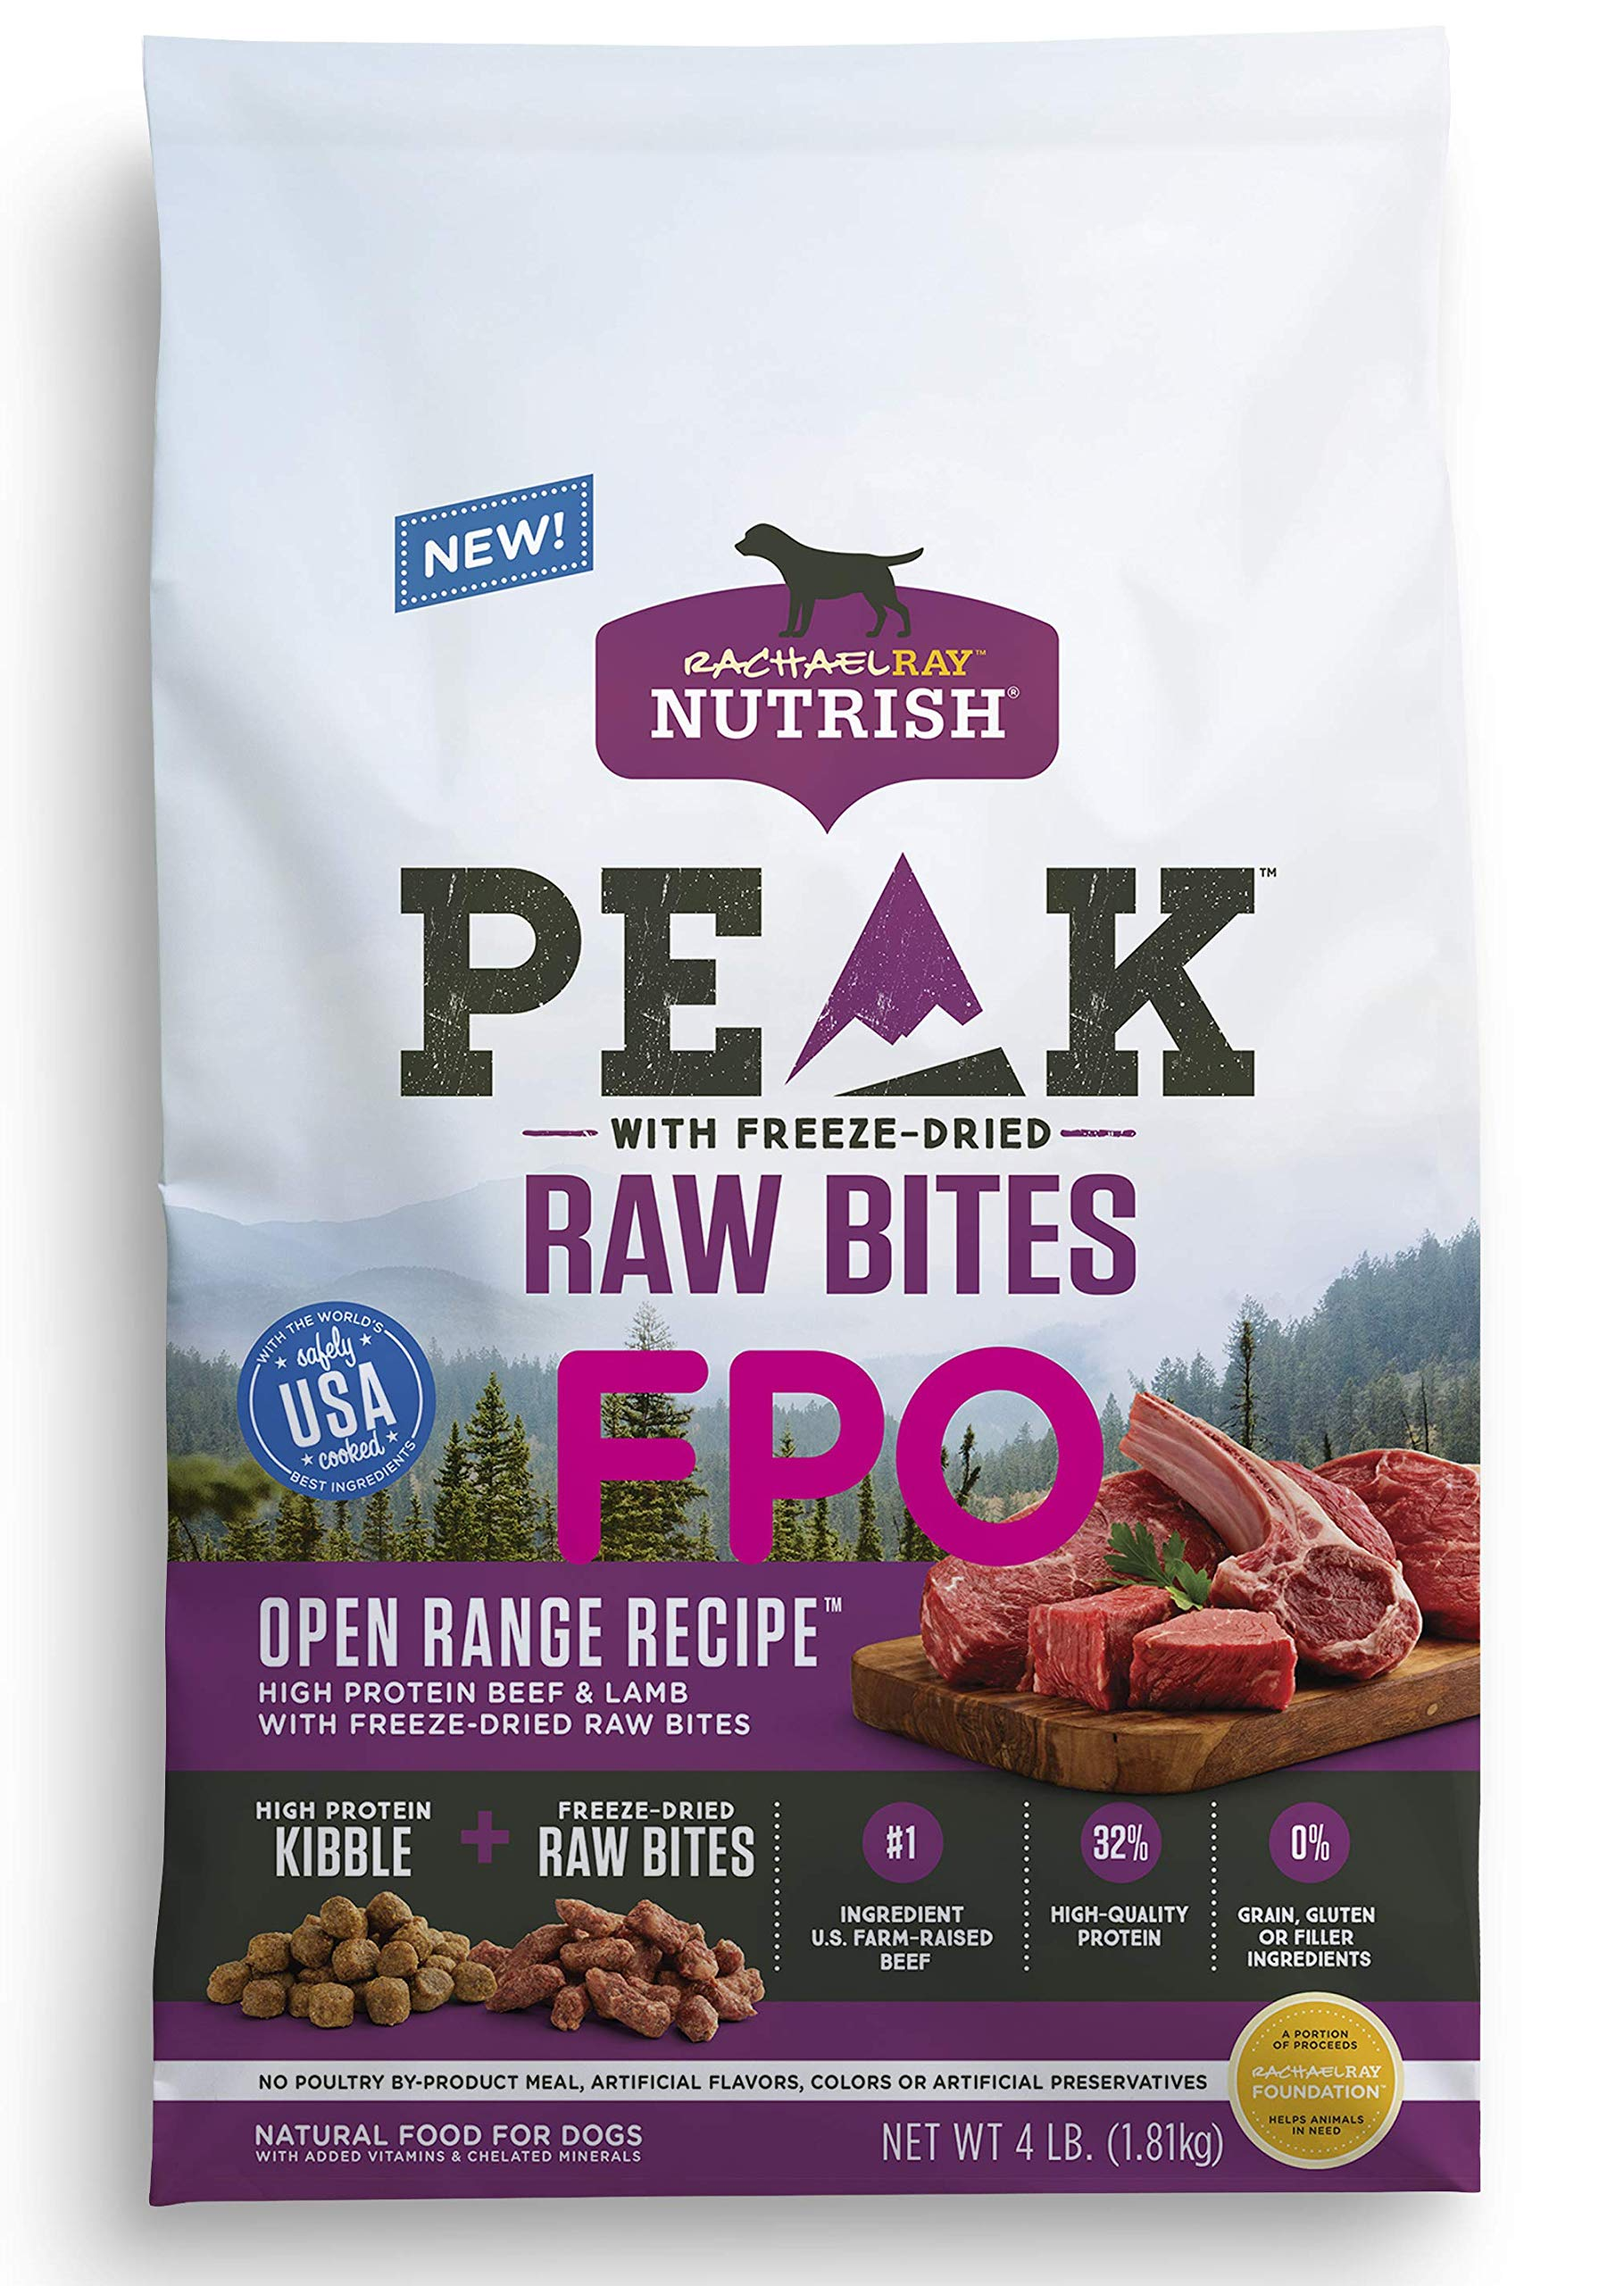 Rachael Ray Nutrish Peak Natural Dry Dog Food with Freeze Dried Raw Bites, Open Range Recipe with Beef & Lamb, 4 Pounds, Grain Free